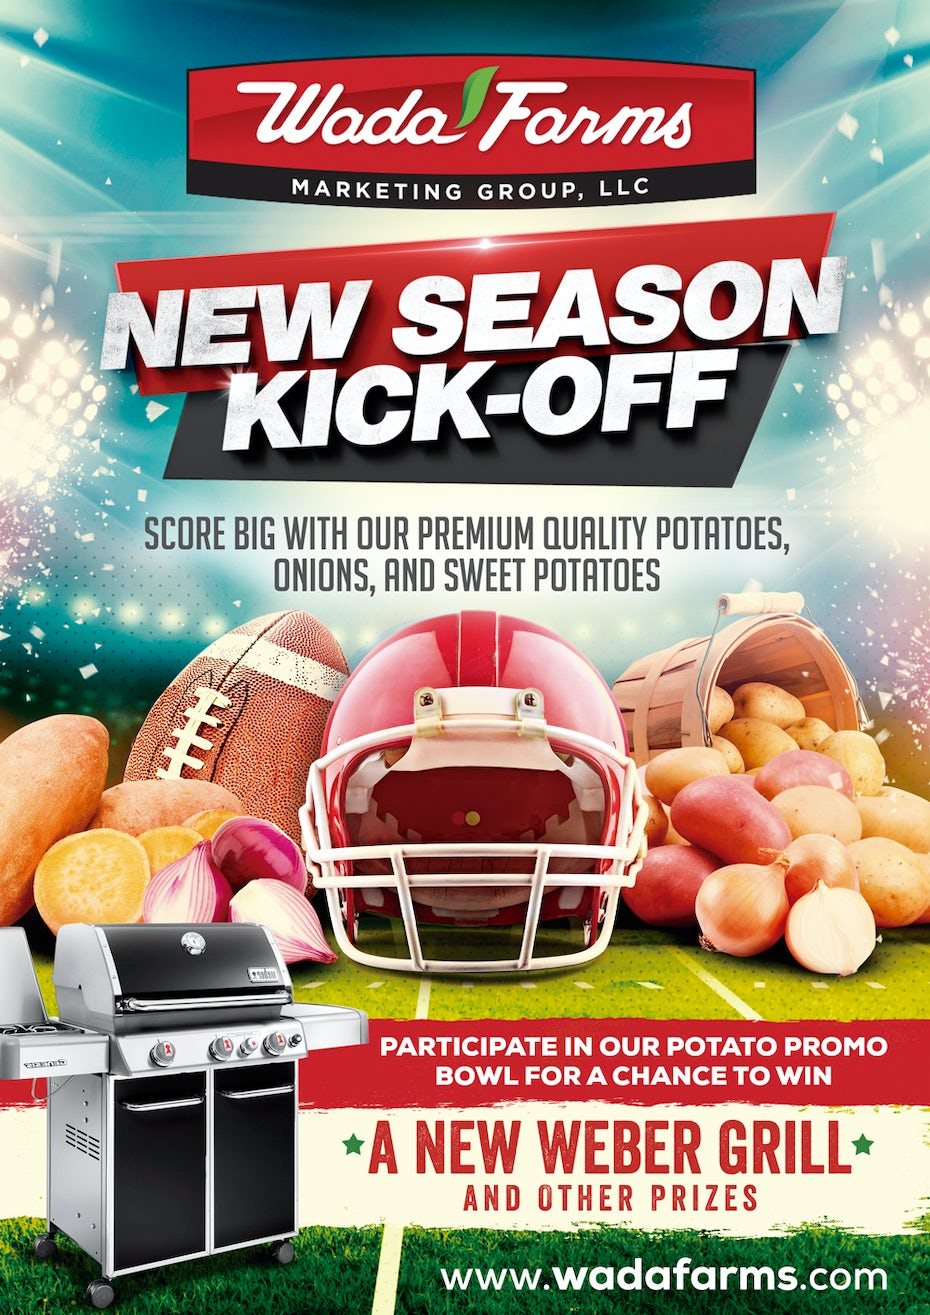 new season kick off flyer with grill promotion